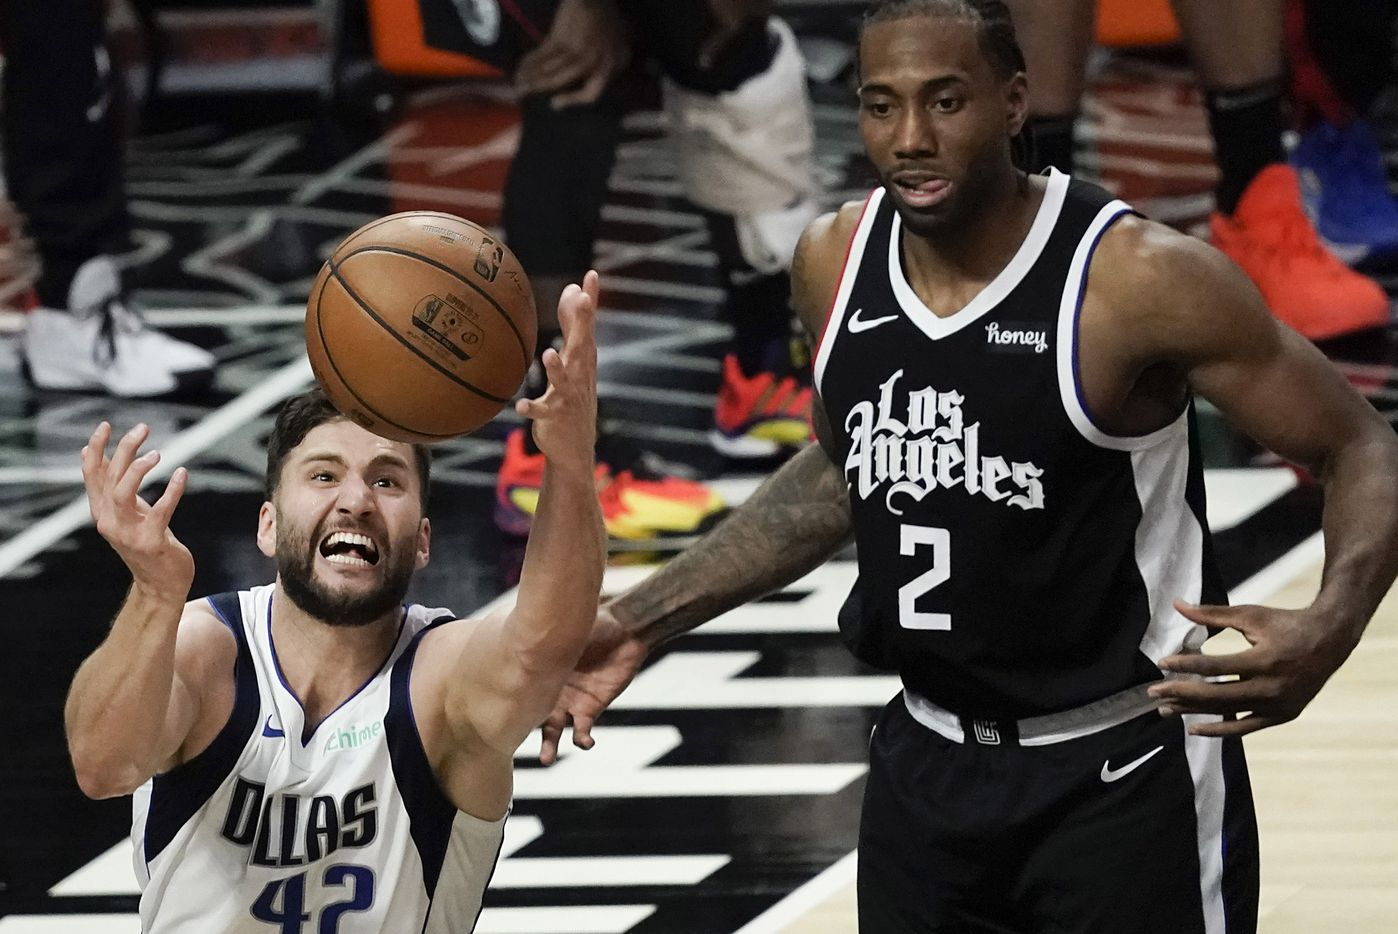 Dallas Mavericks forward Maxi Kleber (42) grabs a rebound in front of LA Clippers forward Kawhi Leonard (2) during the second half of an NBA playoff basketball game at Staples Center on Saturday, May 22, 2021, in Los Angeles. The Mavericks won the game 113-103.